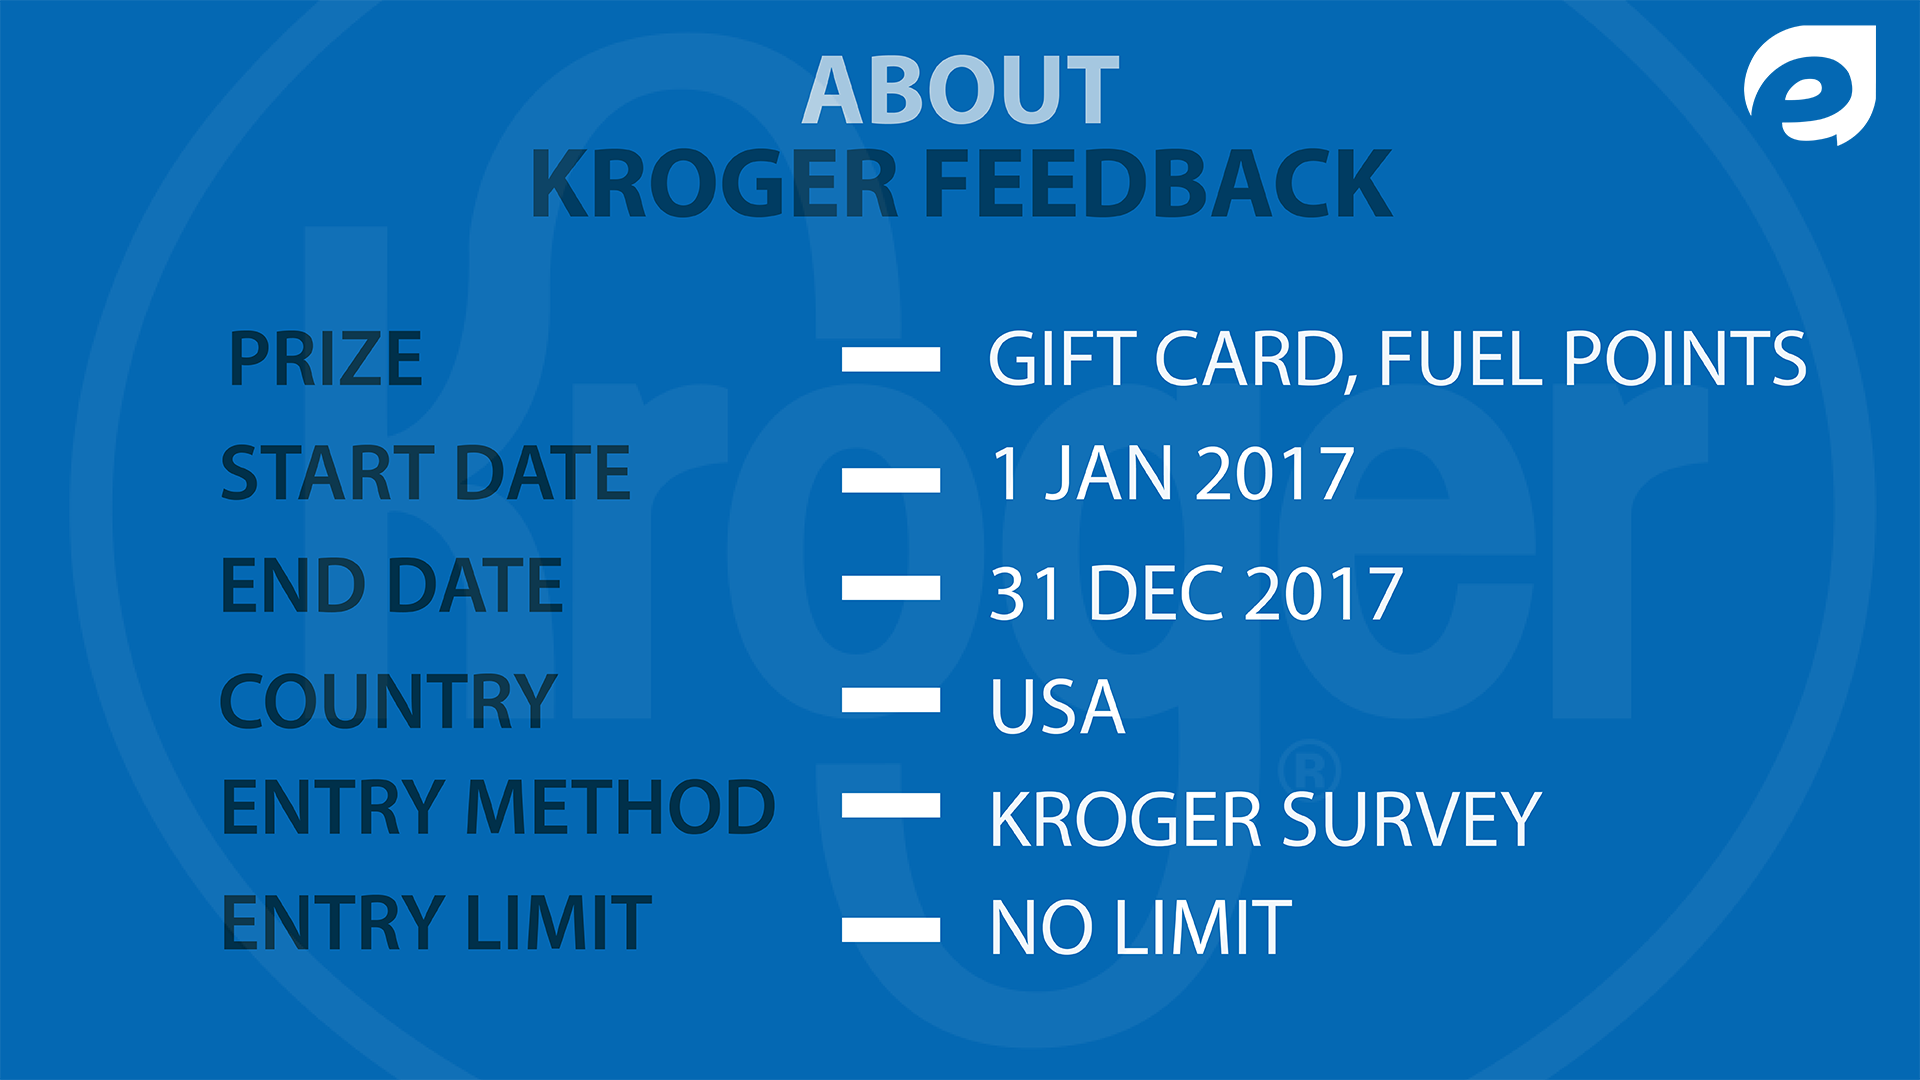 kroger feedback - about the survey